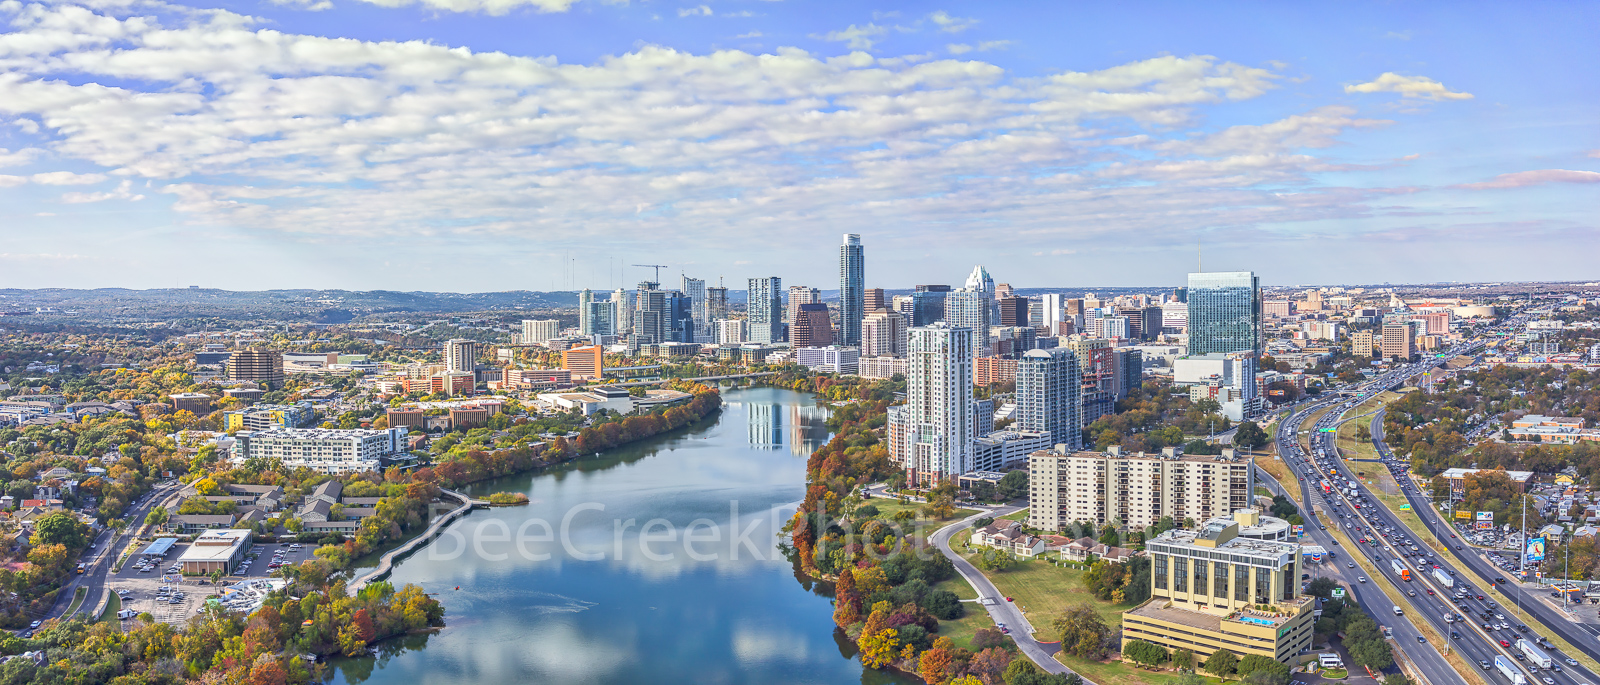 Austin skyline,  Fall Austin Skyline Pano, high rise, Lady Bird lake, city, downtown, buildings, shoreline, IH35, water, fall, aerial, drone, reflection, clouds, colorful fall trees, banks, panorama,